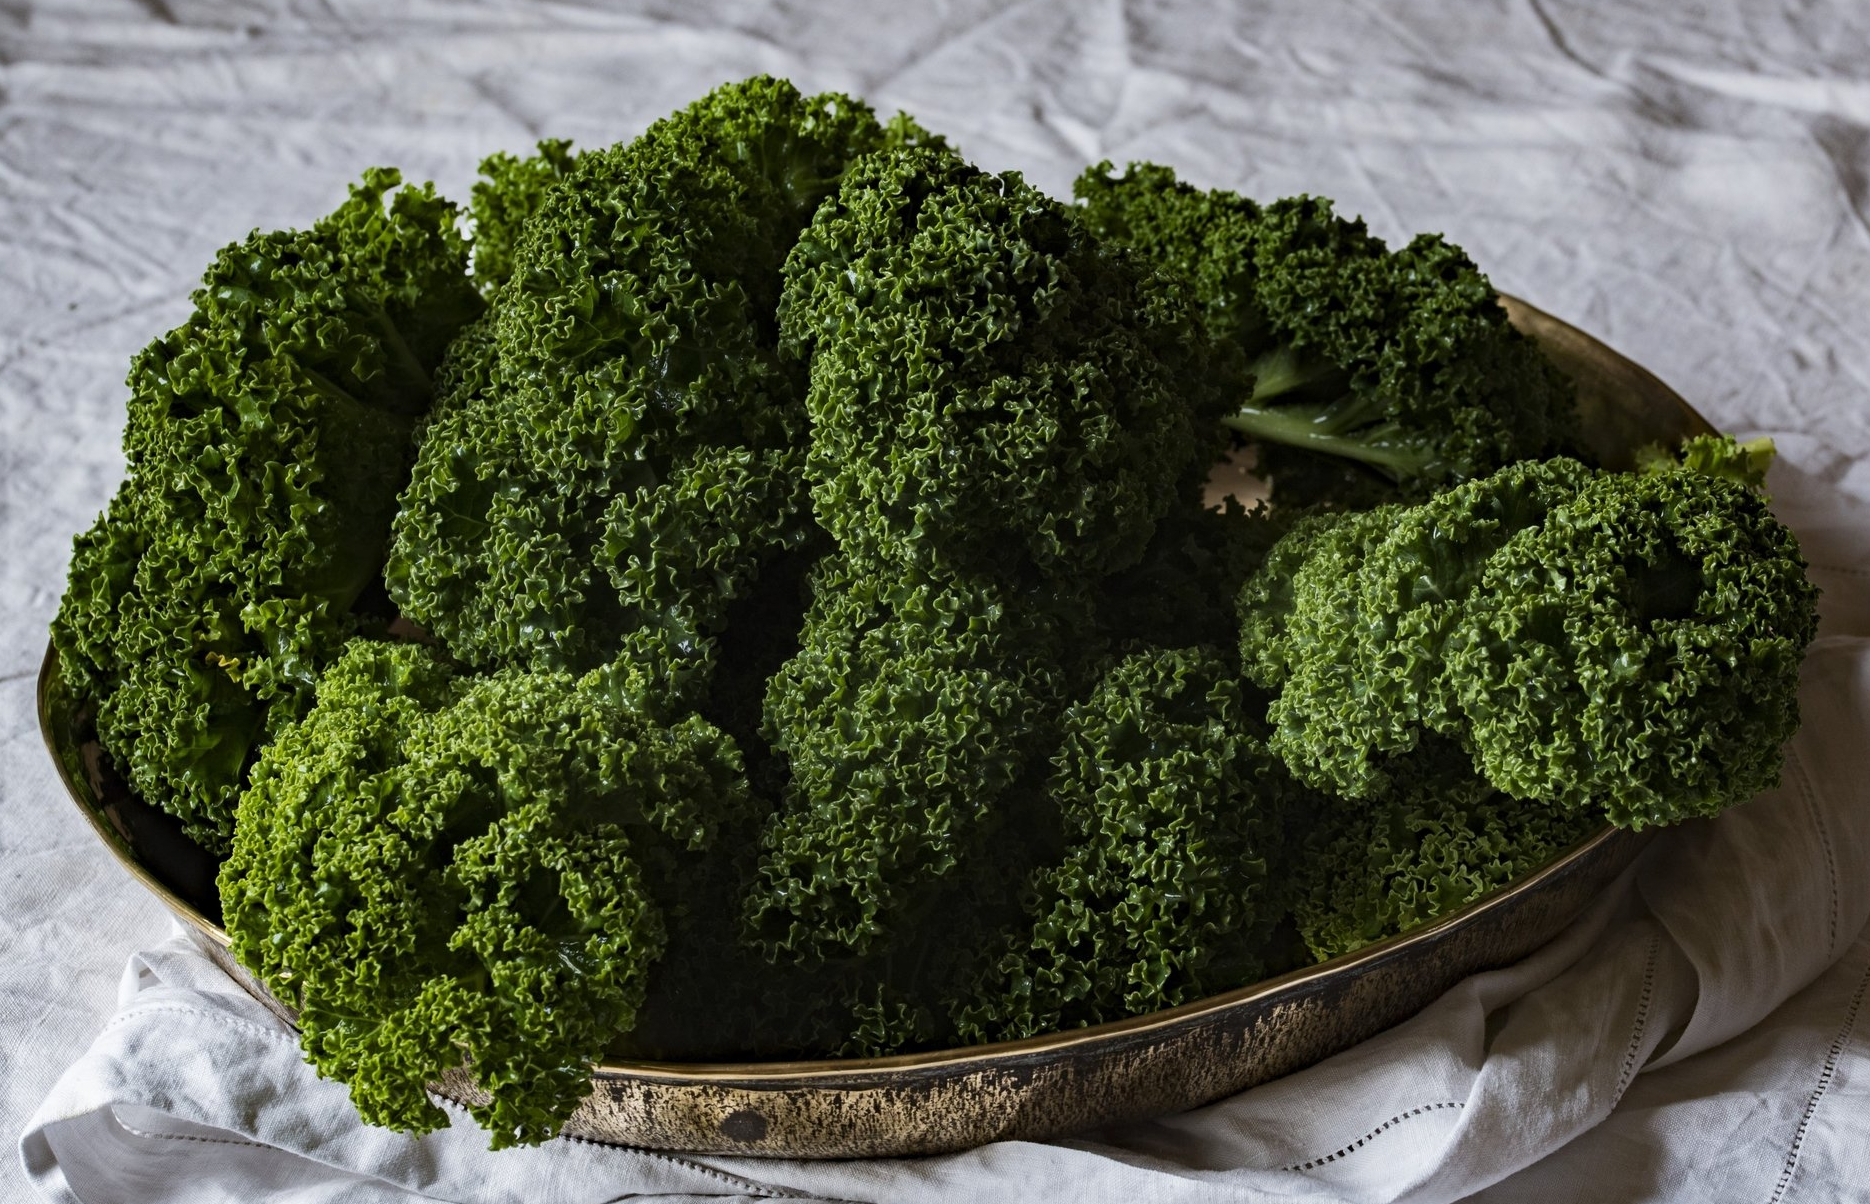 Add chopped kale to this quick and easy crockpot meal to amp up the nutritional profile and give this easy slow cooker meal a healthy boost!